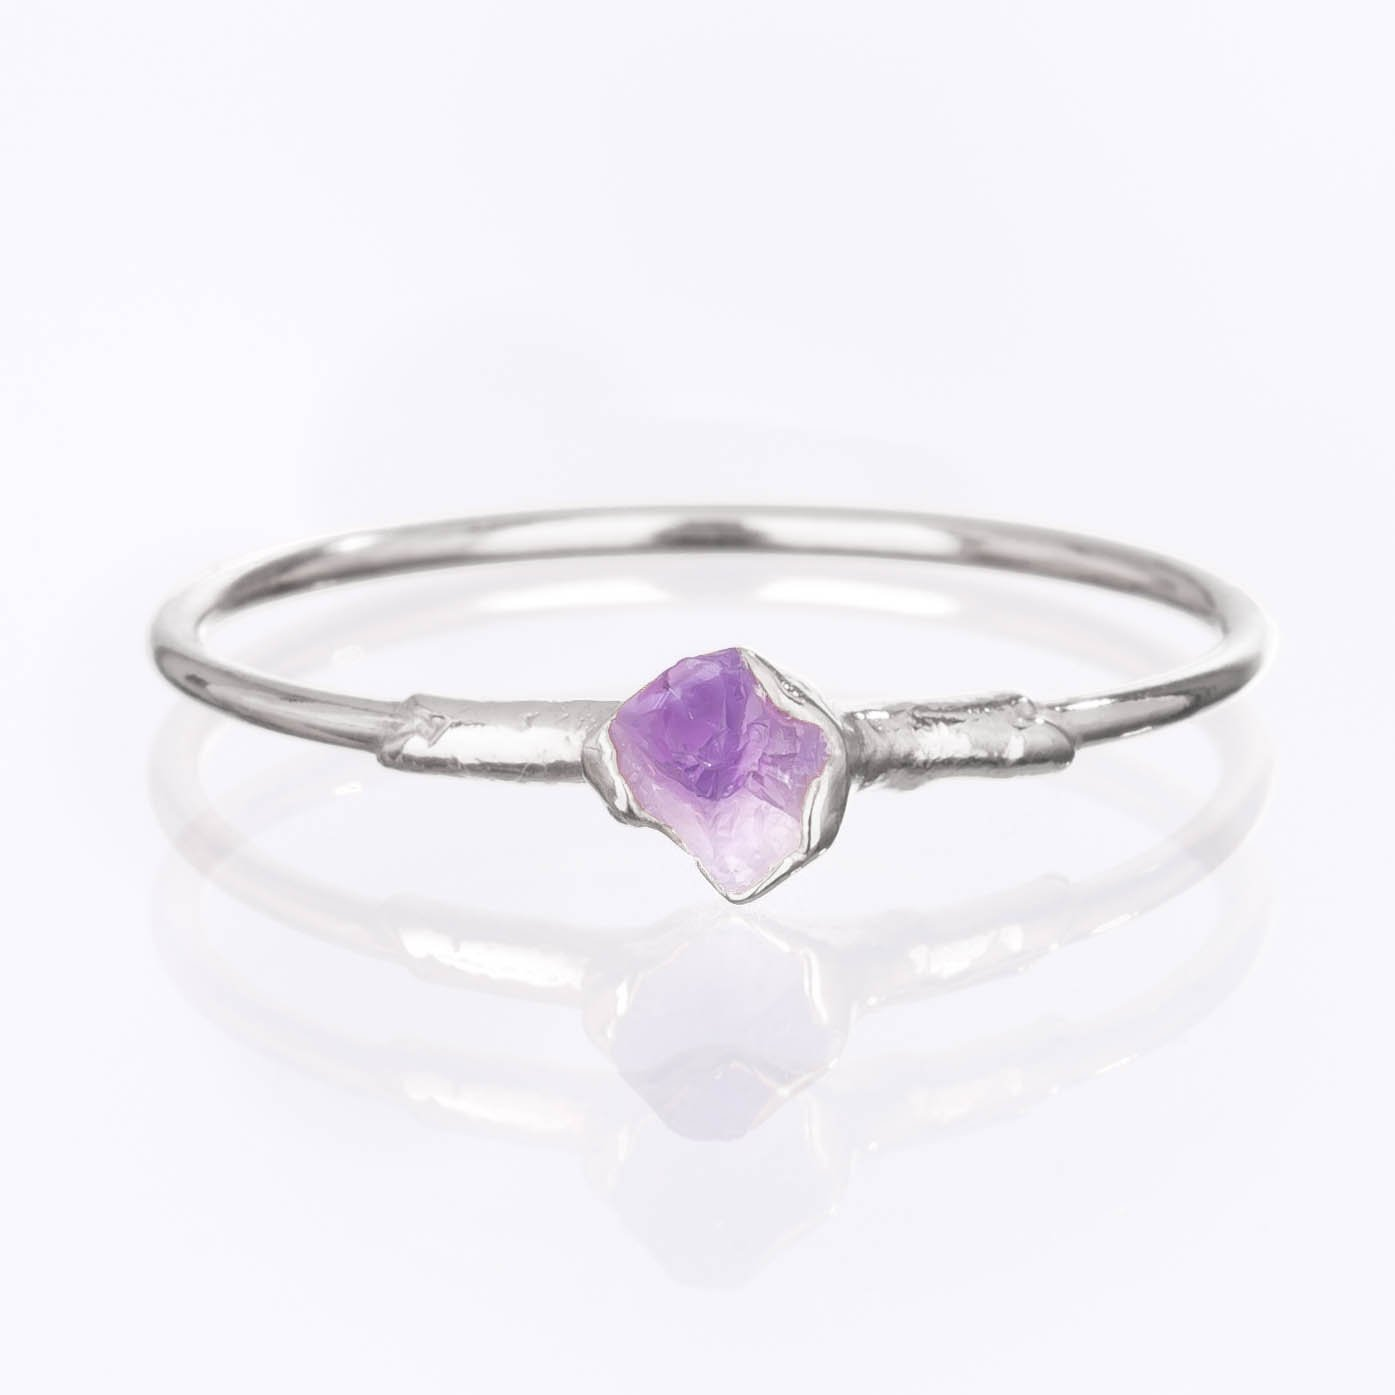 Raw Amethyst Ring, Sterling Silver, Size 7 Mini Stacking Ring, February Birthstone